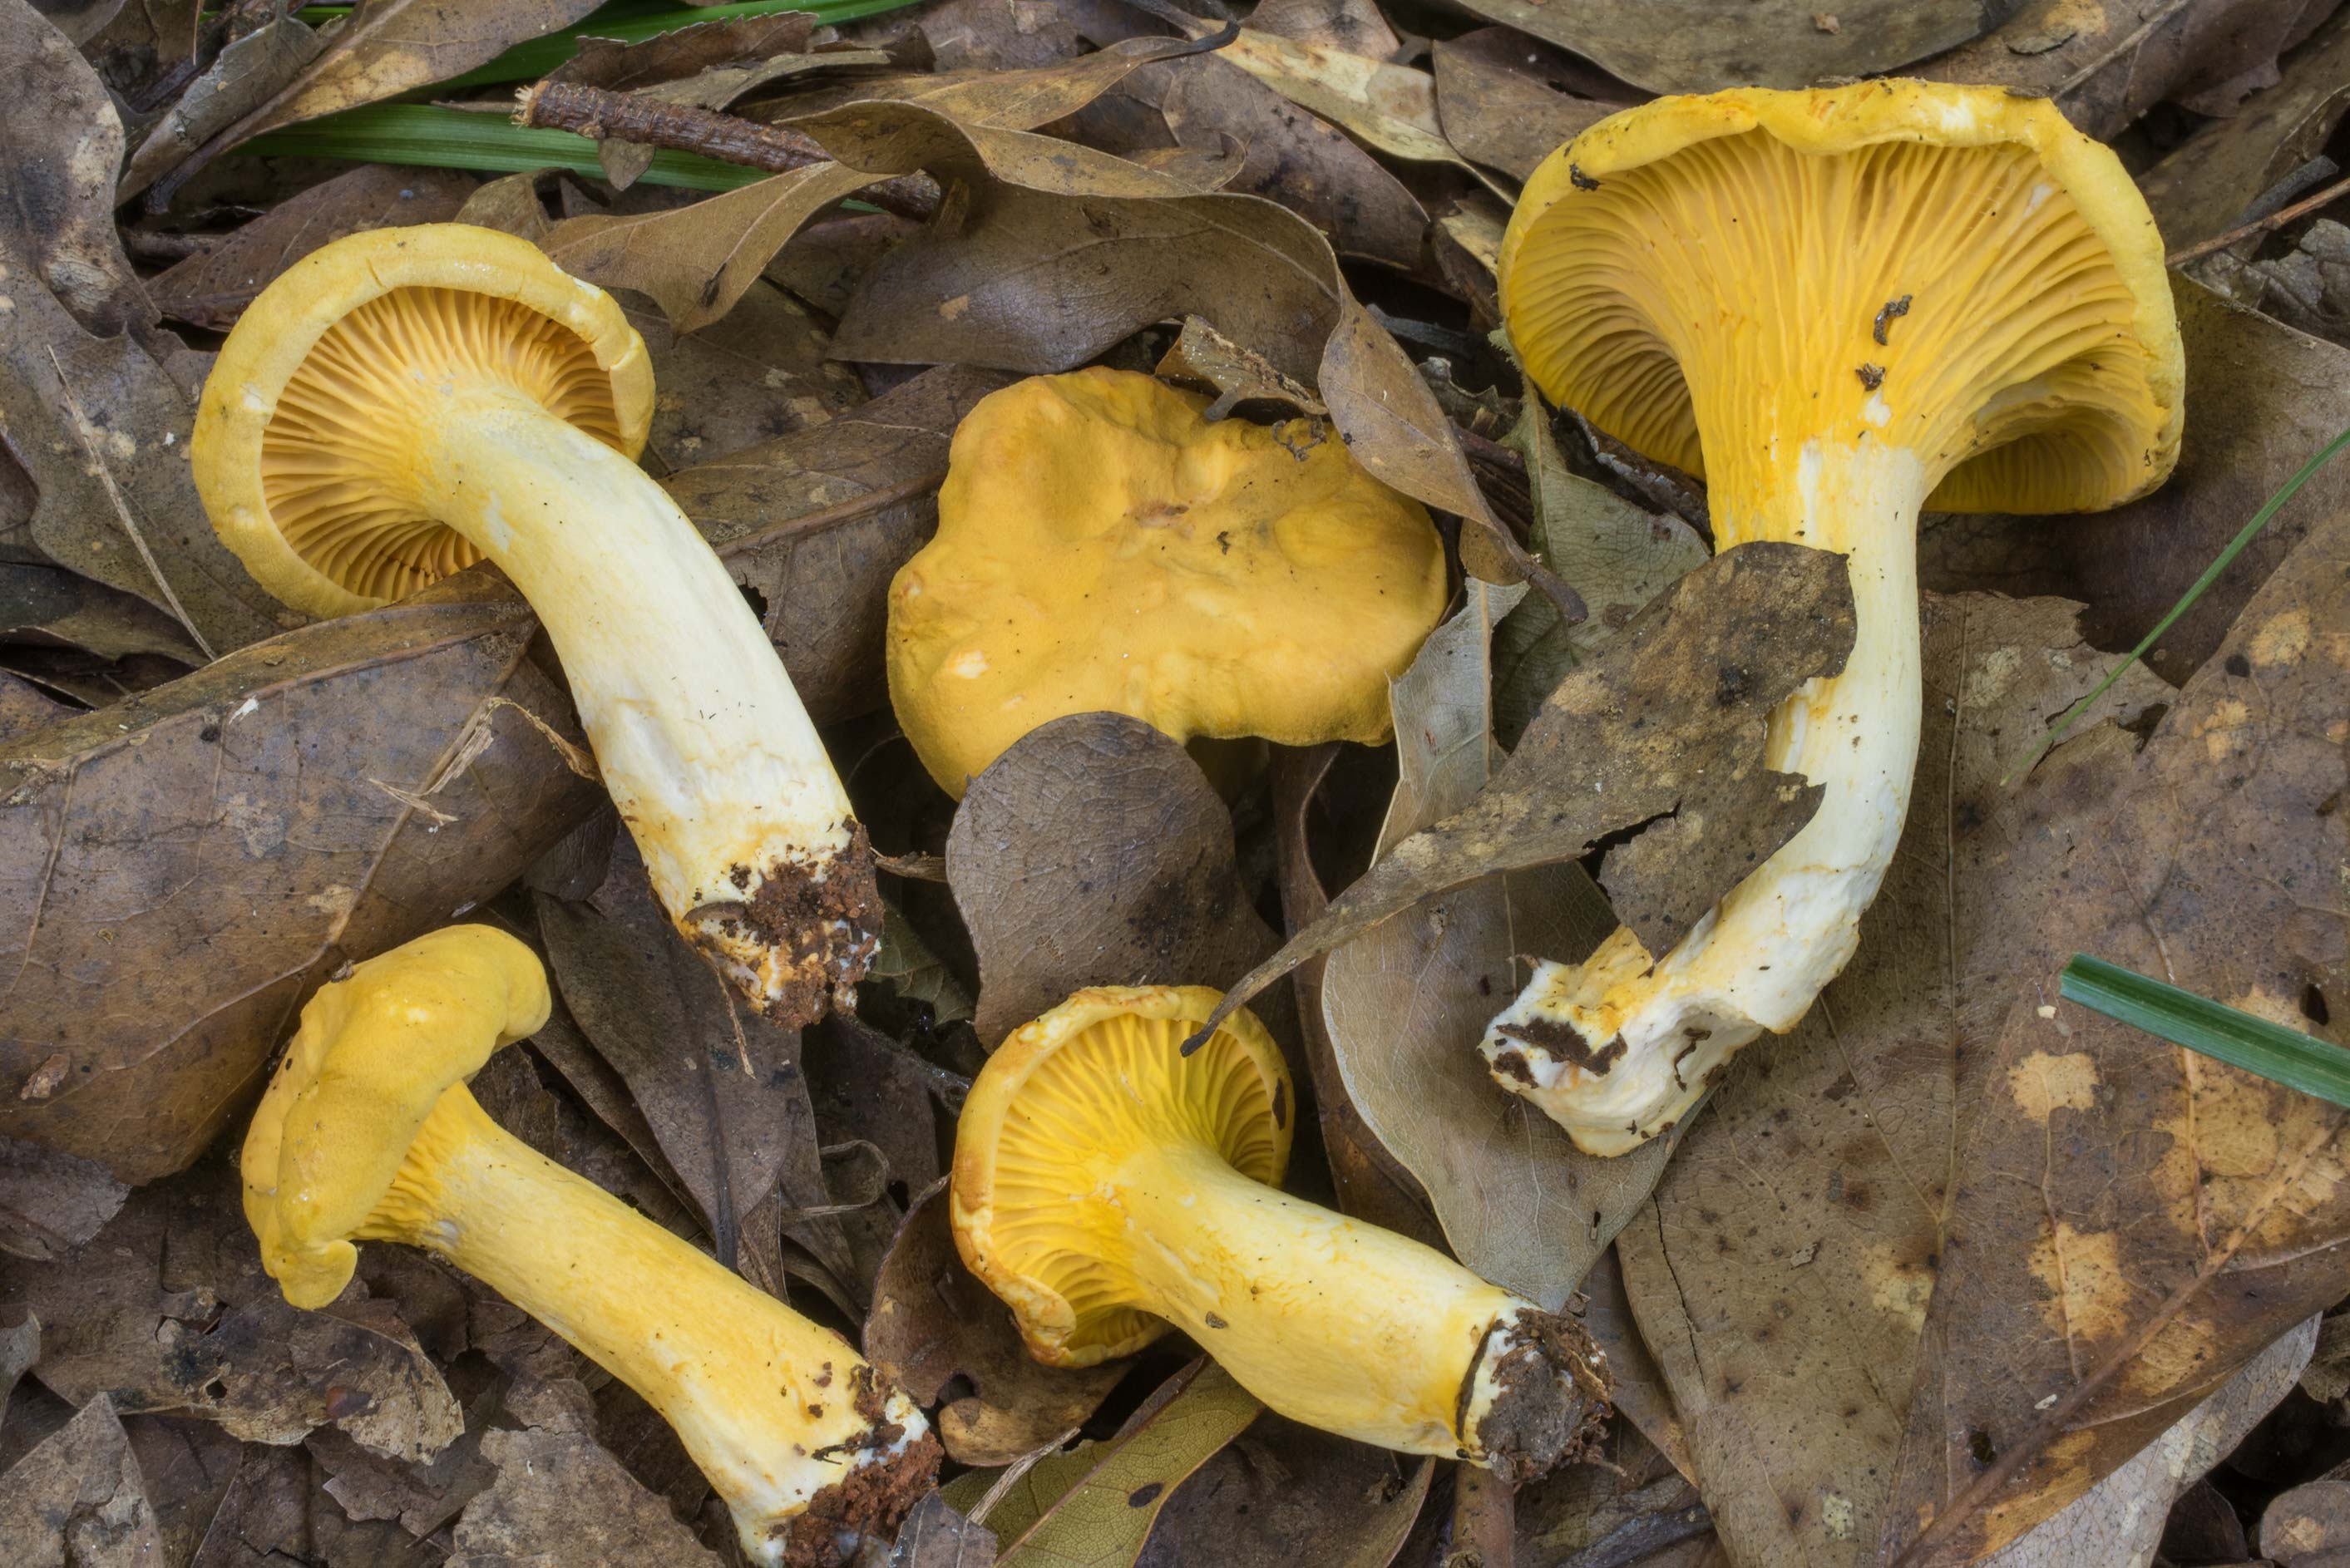 Golden chanterelle mushrooms (Cantharellus...Creek Park. College Station, Texas